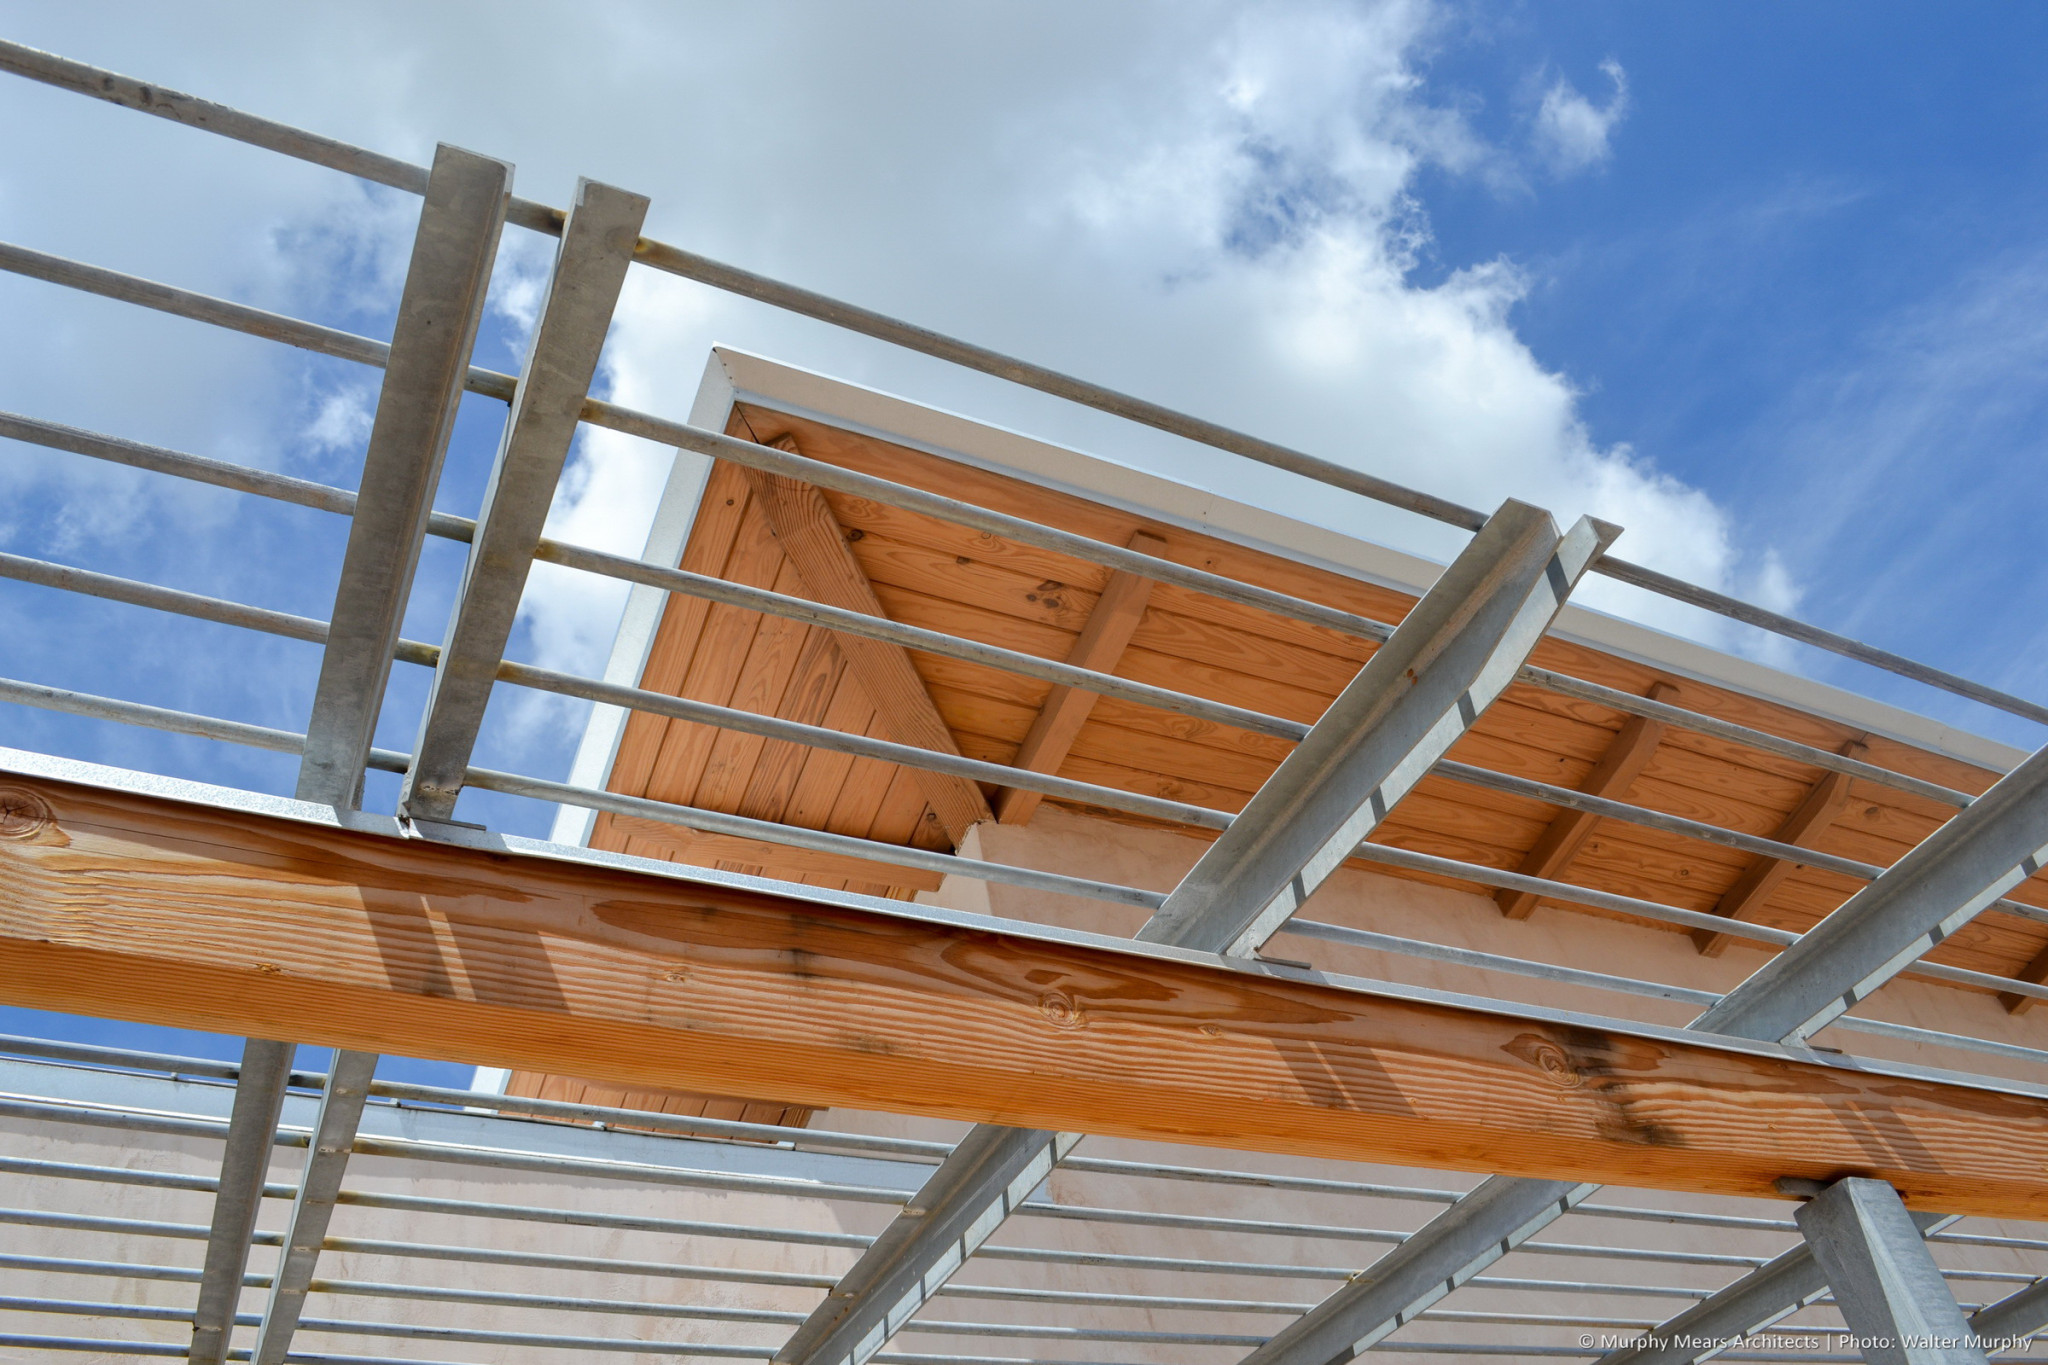 integration of galvanized steel with unfinished wood for shade and roof structrures